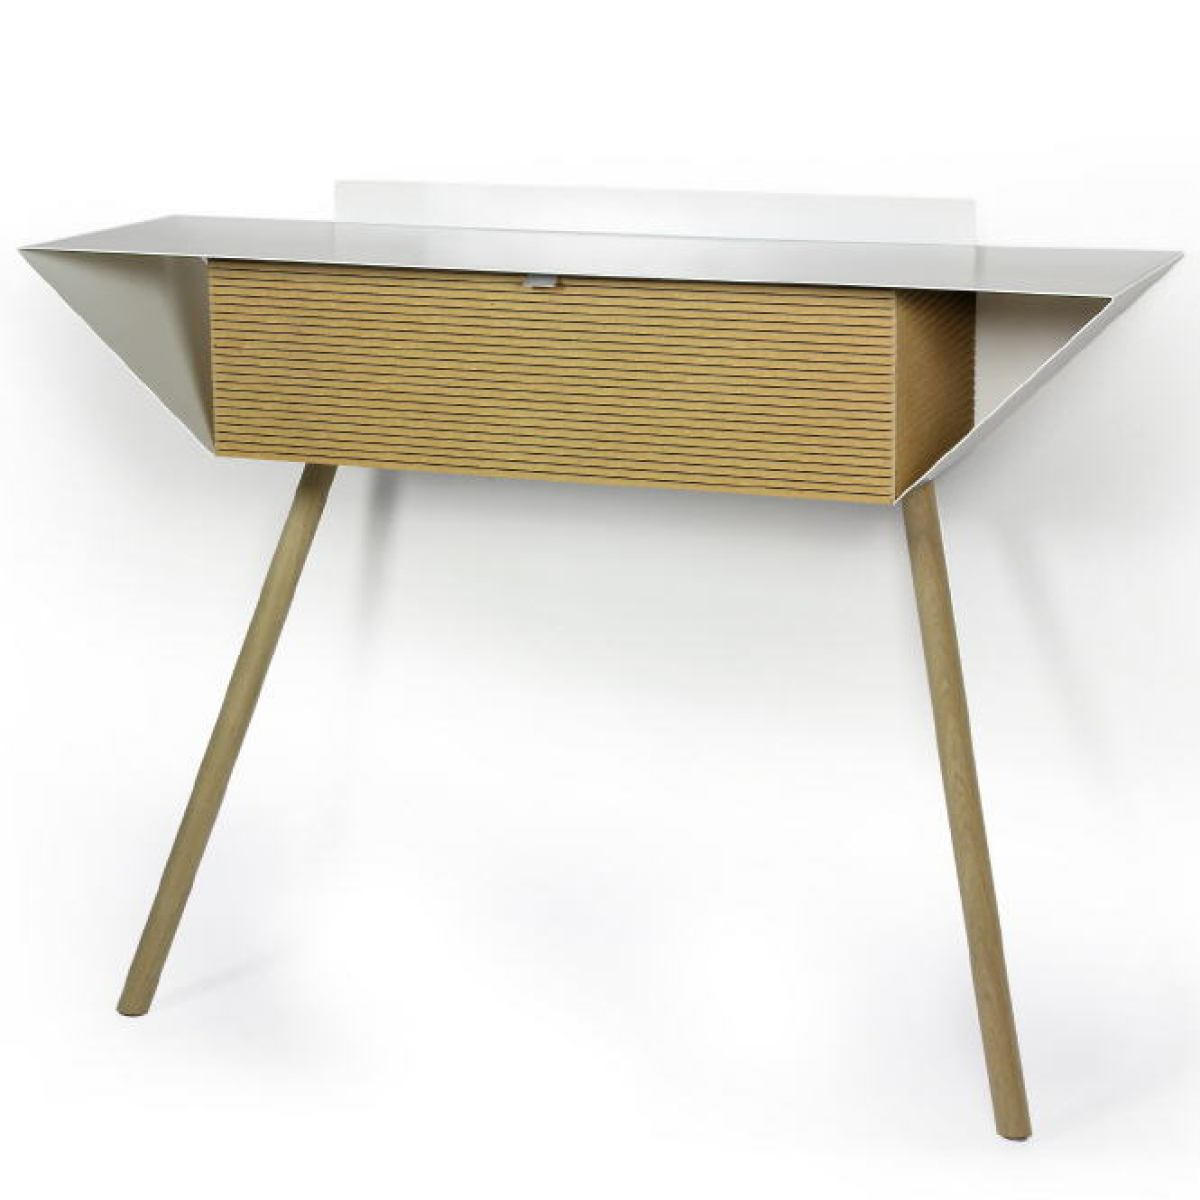 Wall-leaning Sideboard made of Steel and MDF (100 x 28 cm)